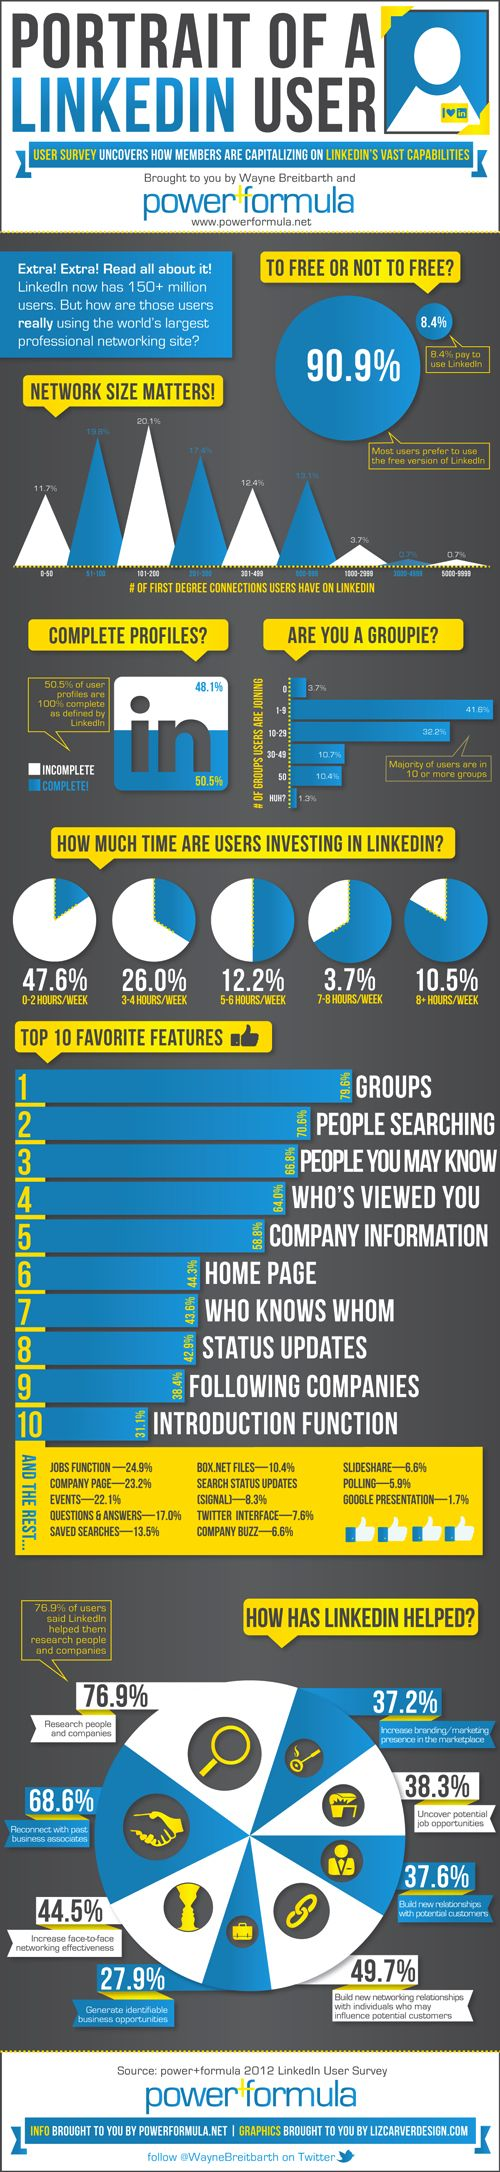 Portrait of a Linked In User from The Undercover Recruiter (http://theundercoverrecruiter.com/content/infographic-linkedin-user-statistics-network-profiles-groups-applications)